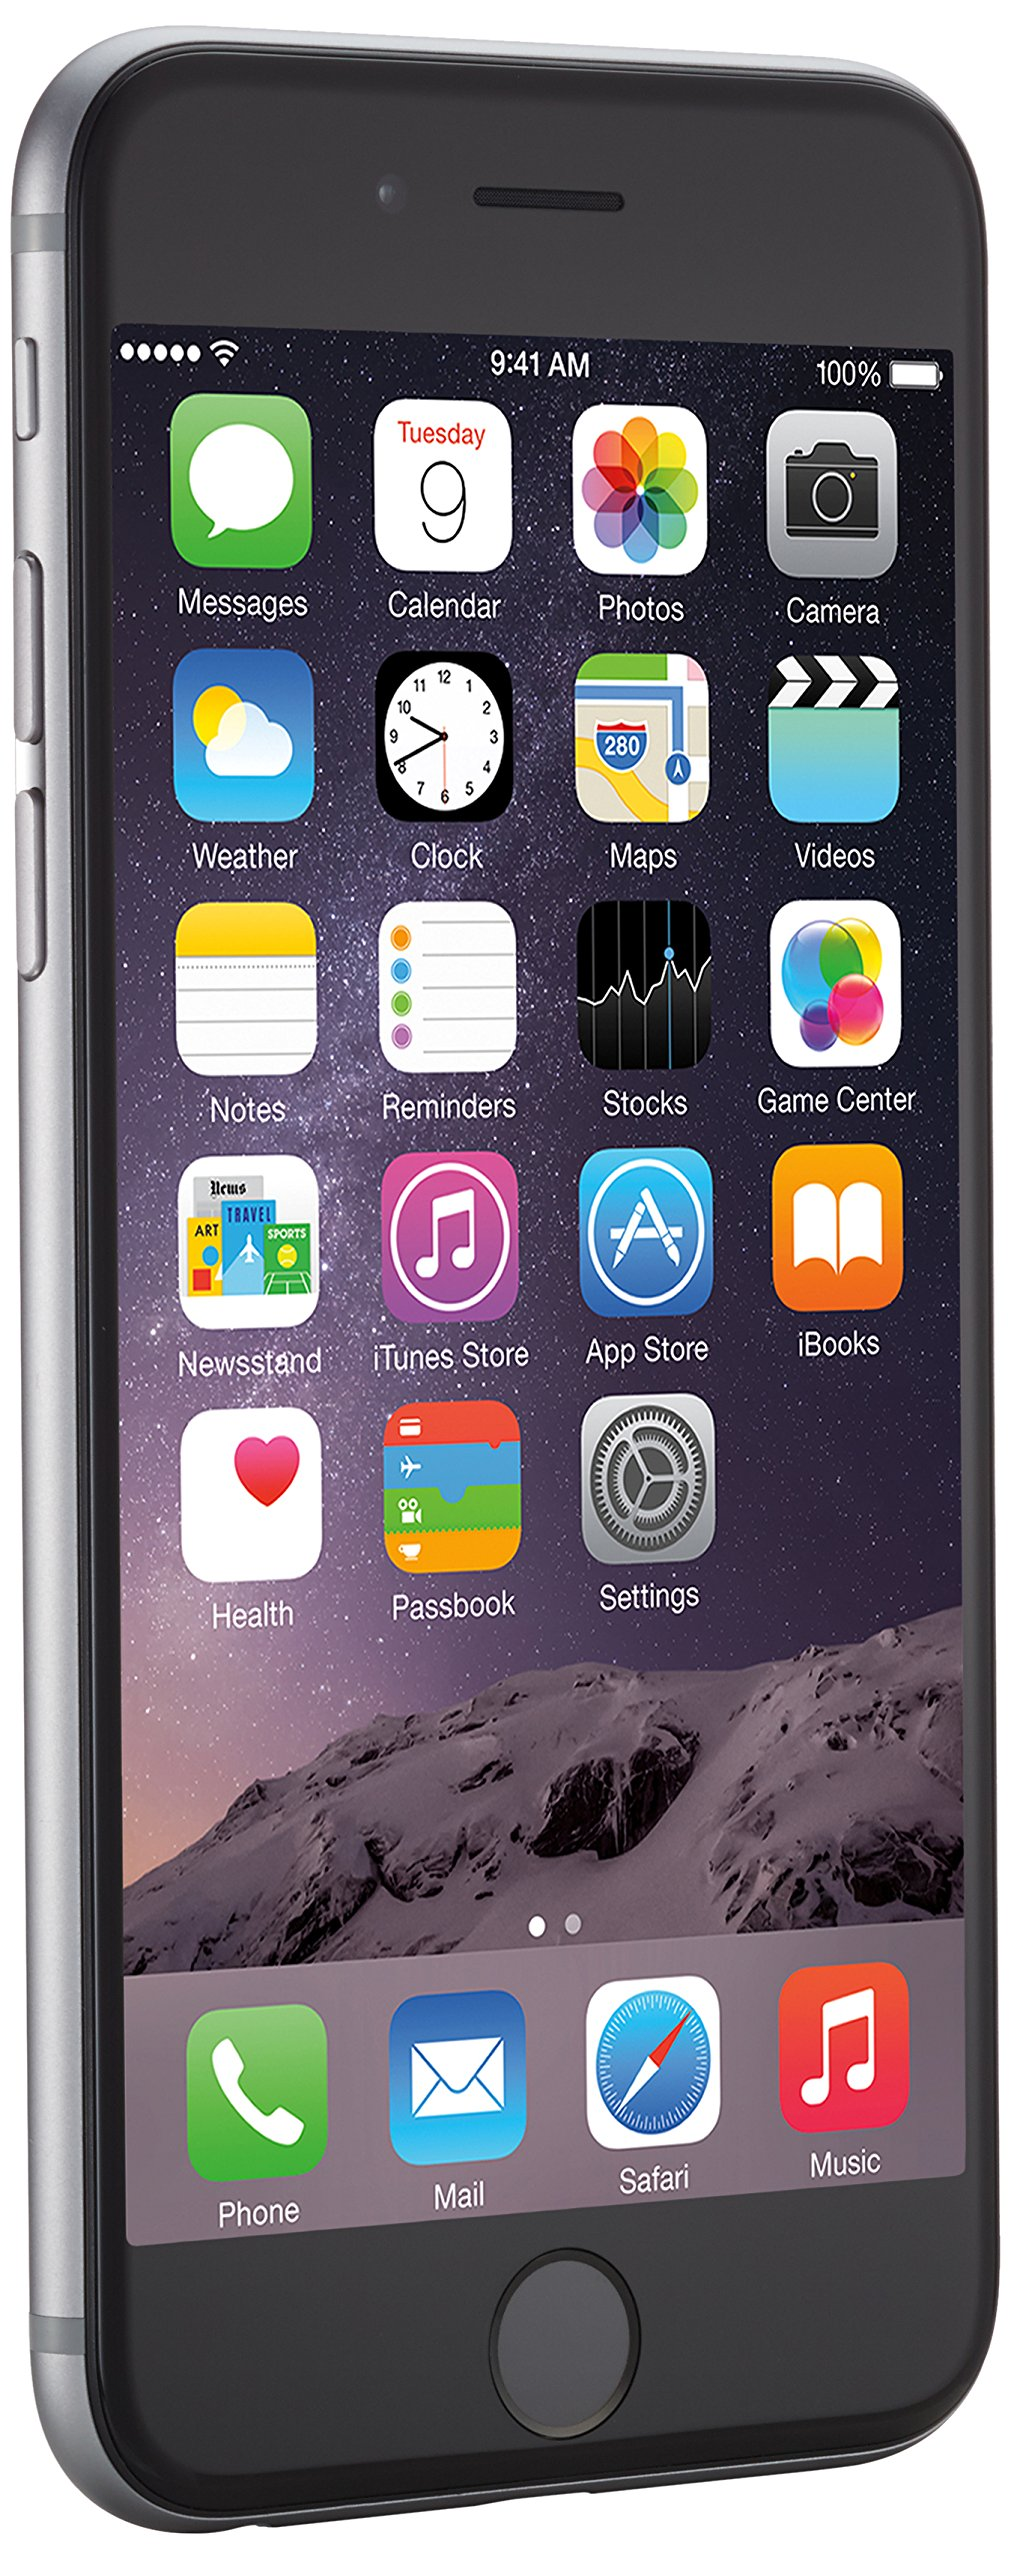 Apple iPhone 6 16 GB Verizon, Space Gray by Apple (Image #1)